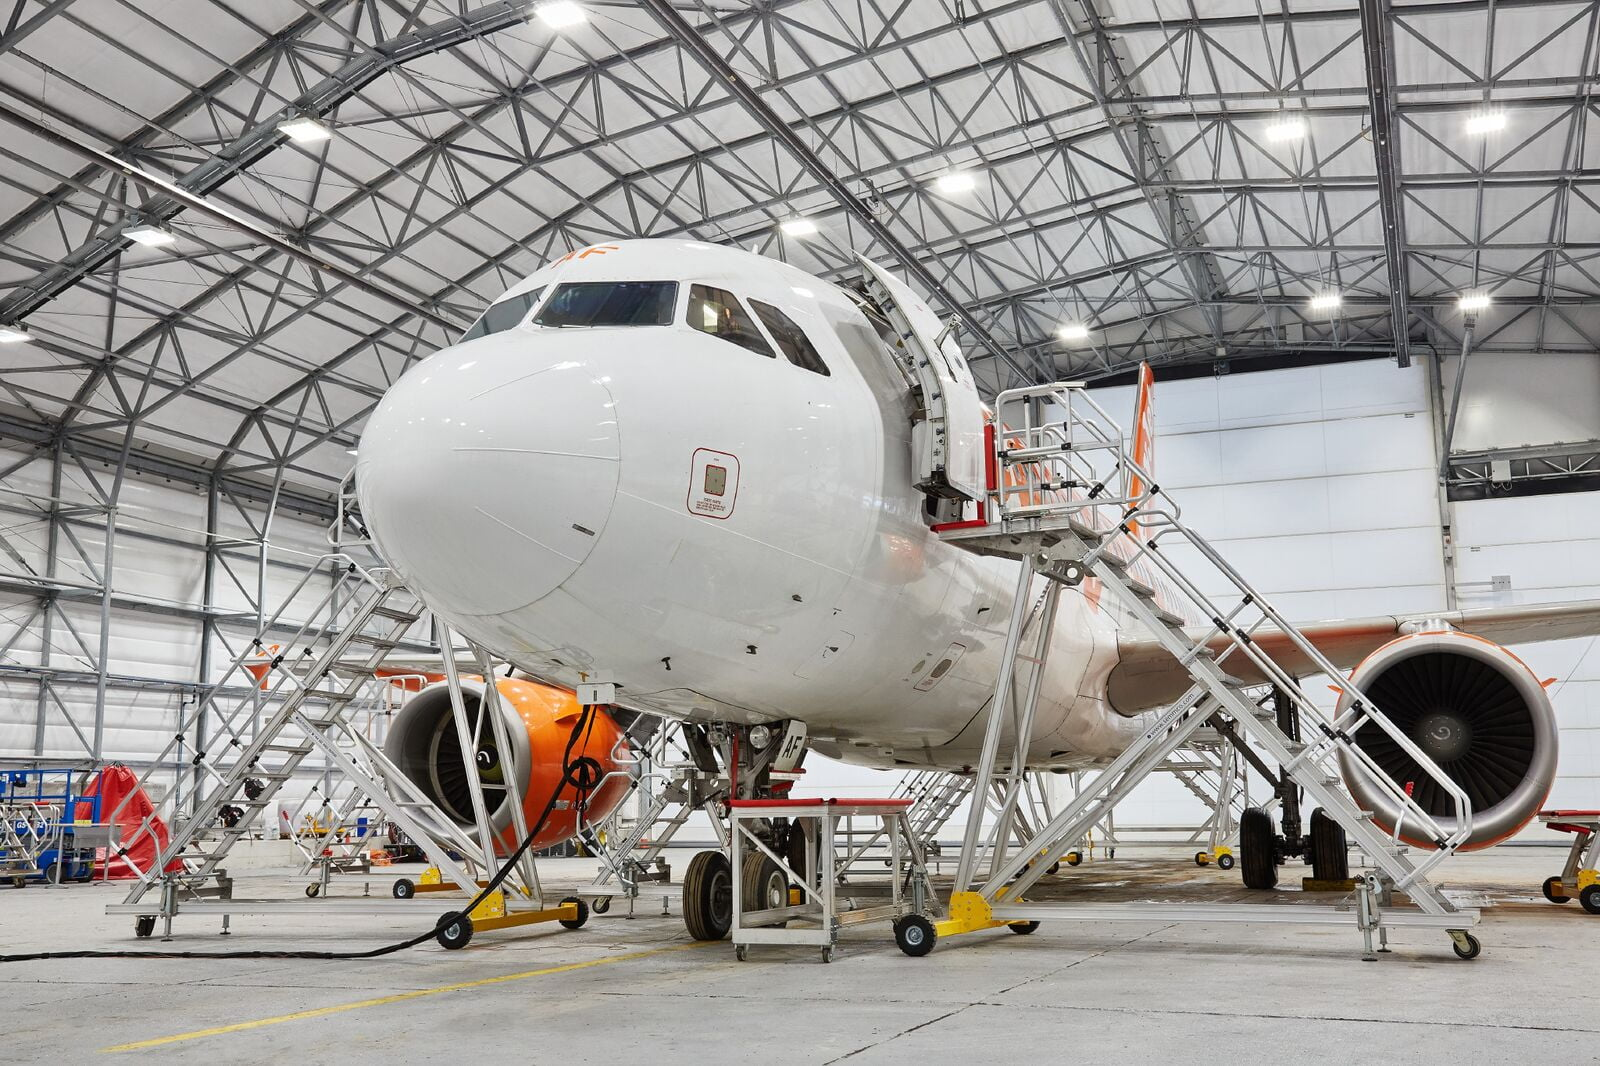 Maintenance, Repair & Overhaul (MRO)